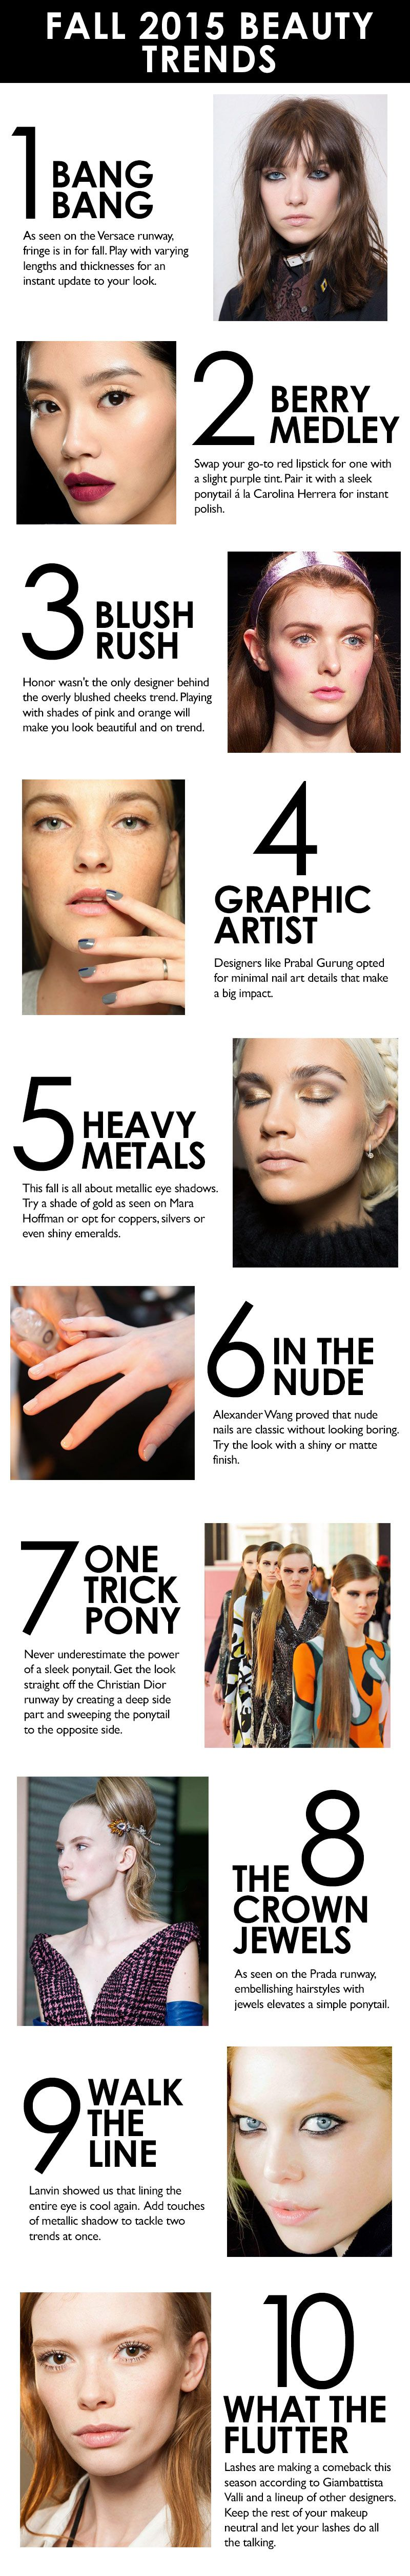 A Guide To The Best Beauty Trends For Fall 2015 | Living ...